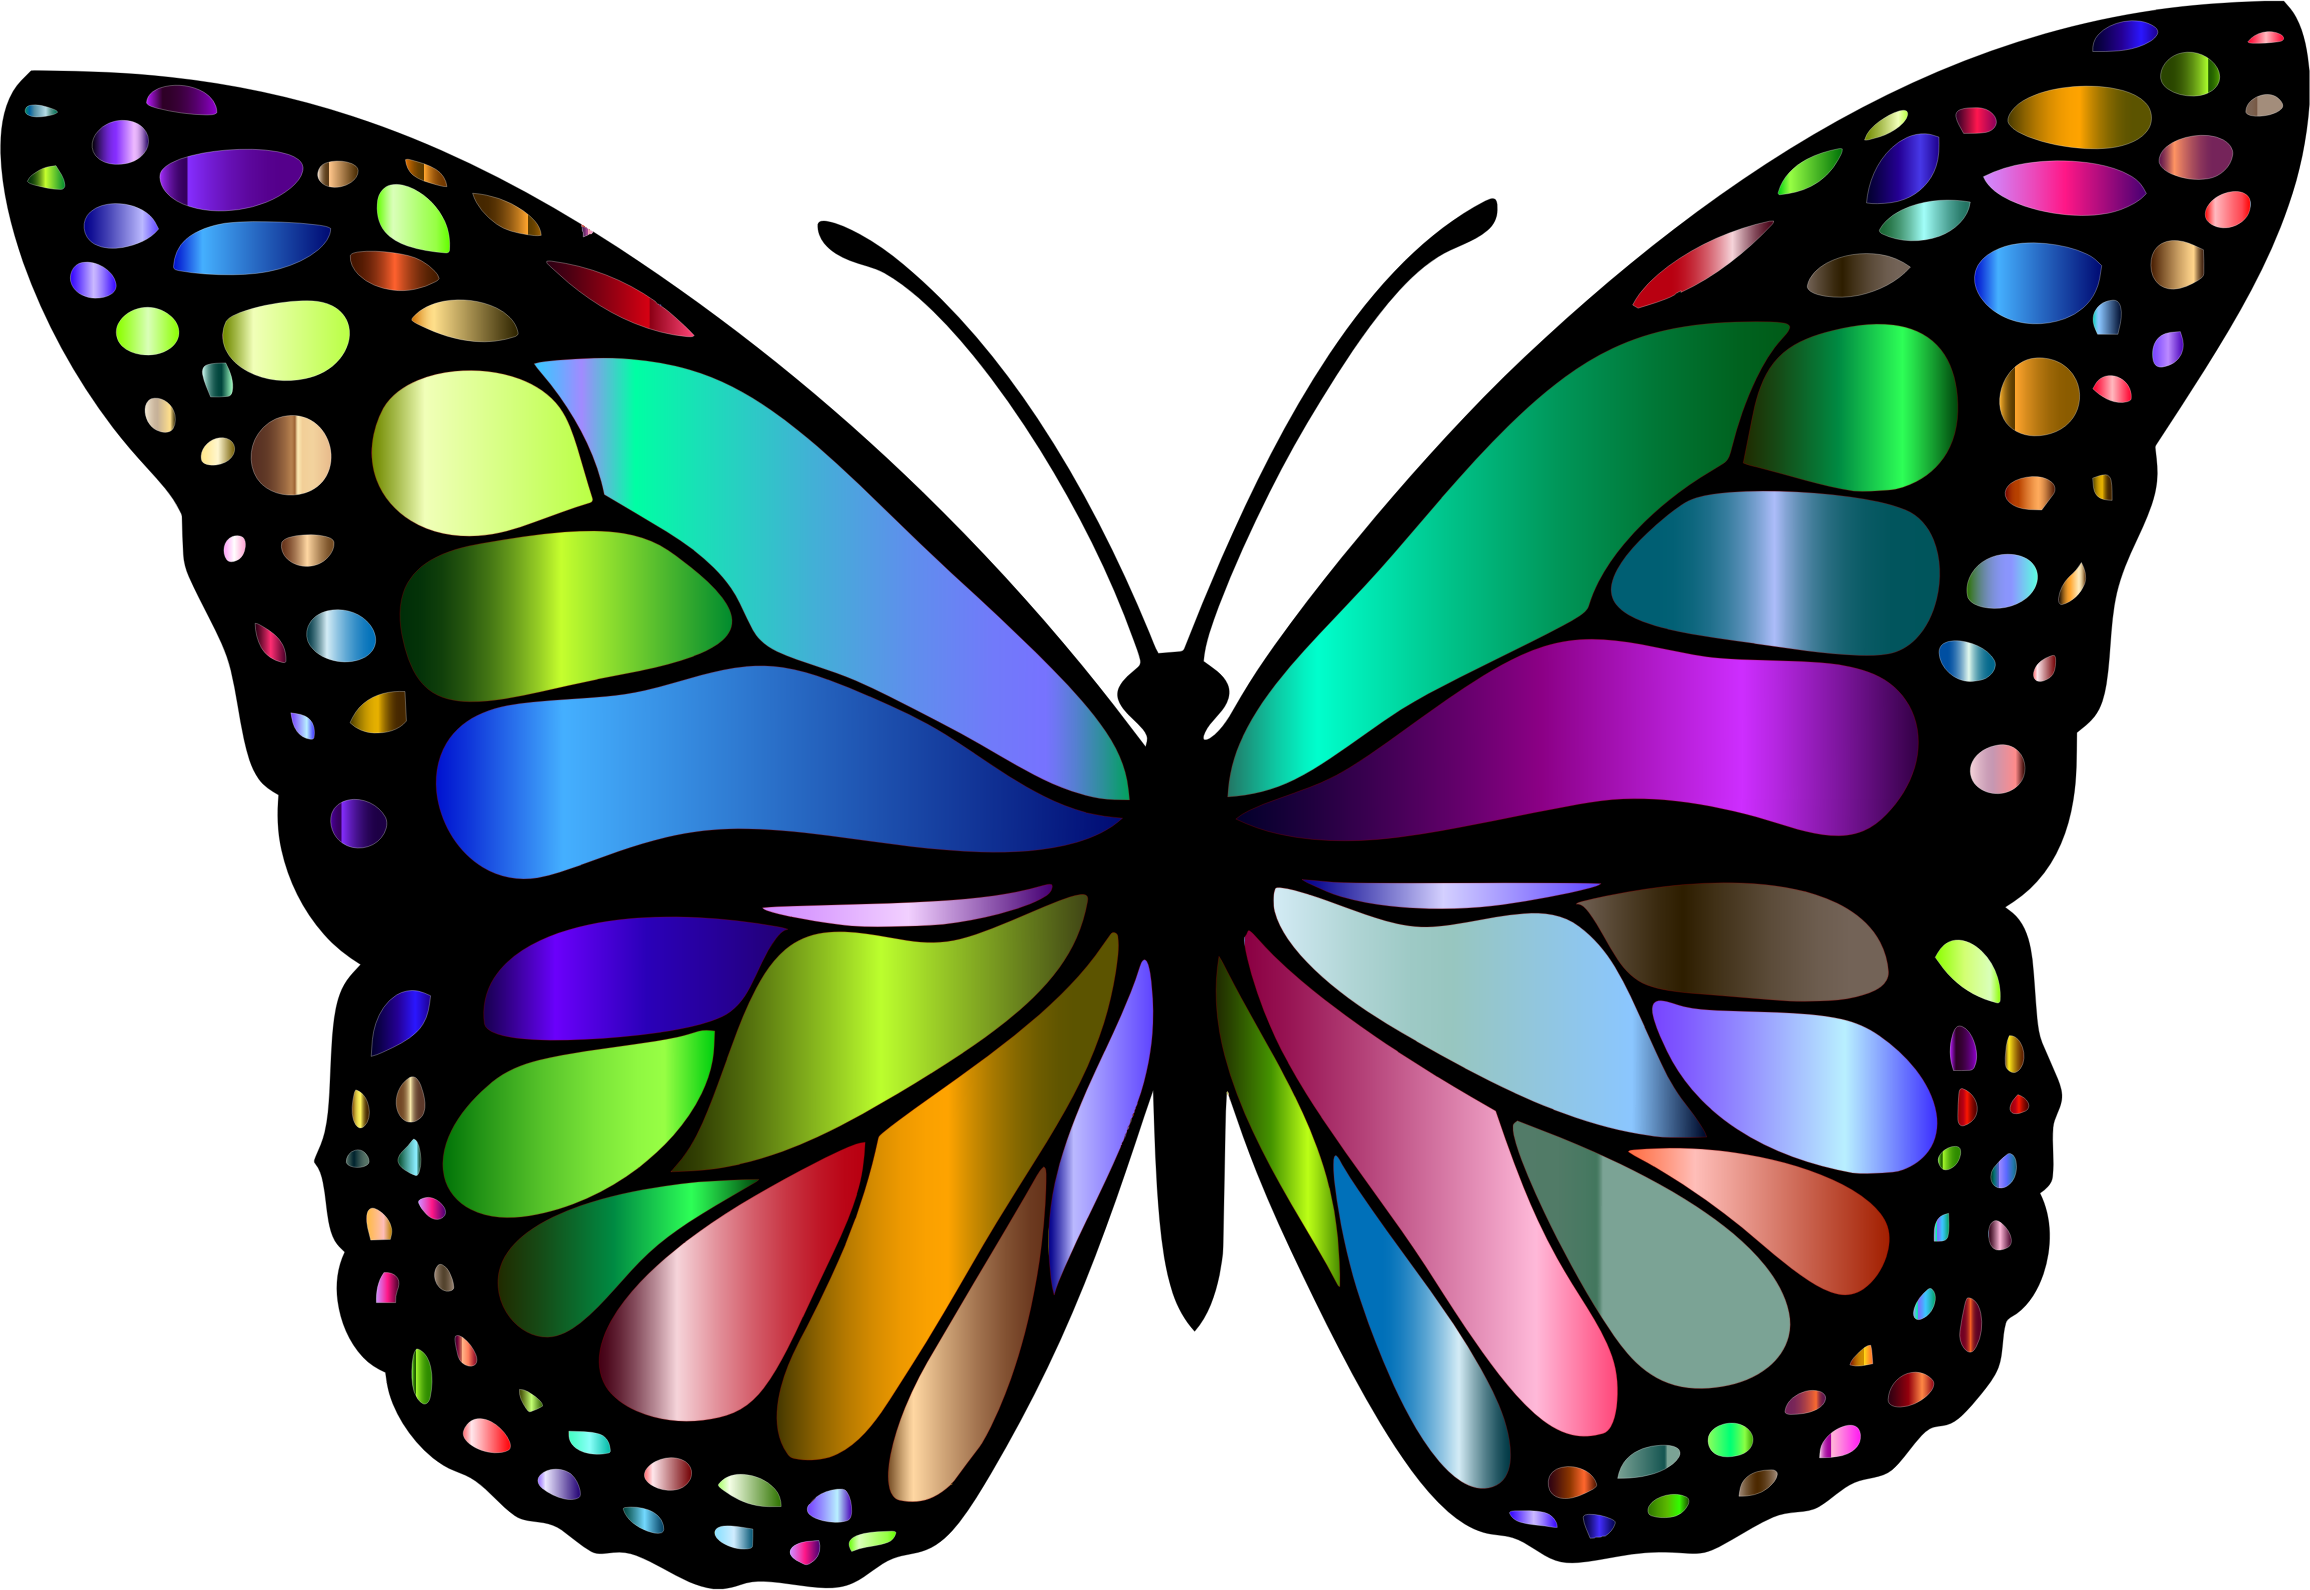 2 clipart butterfly. Monarch variation big image